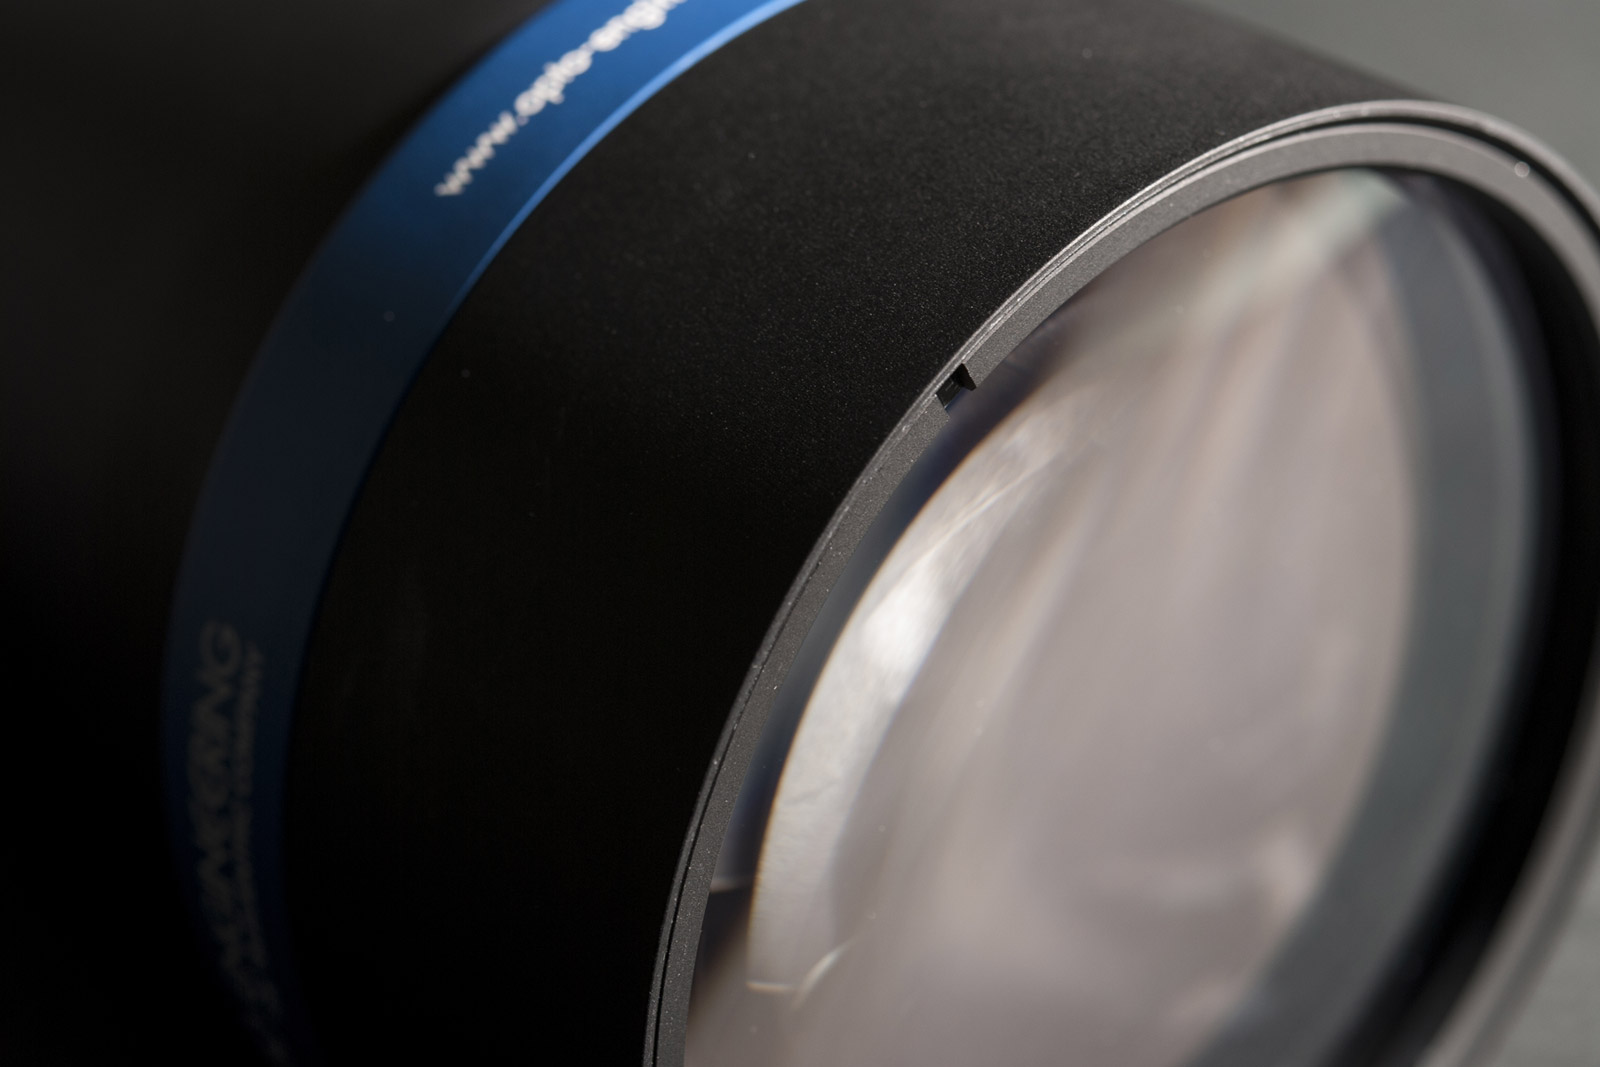 Closeup view of a TC12K telecentric lens